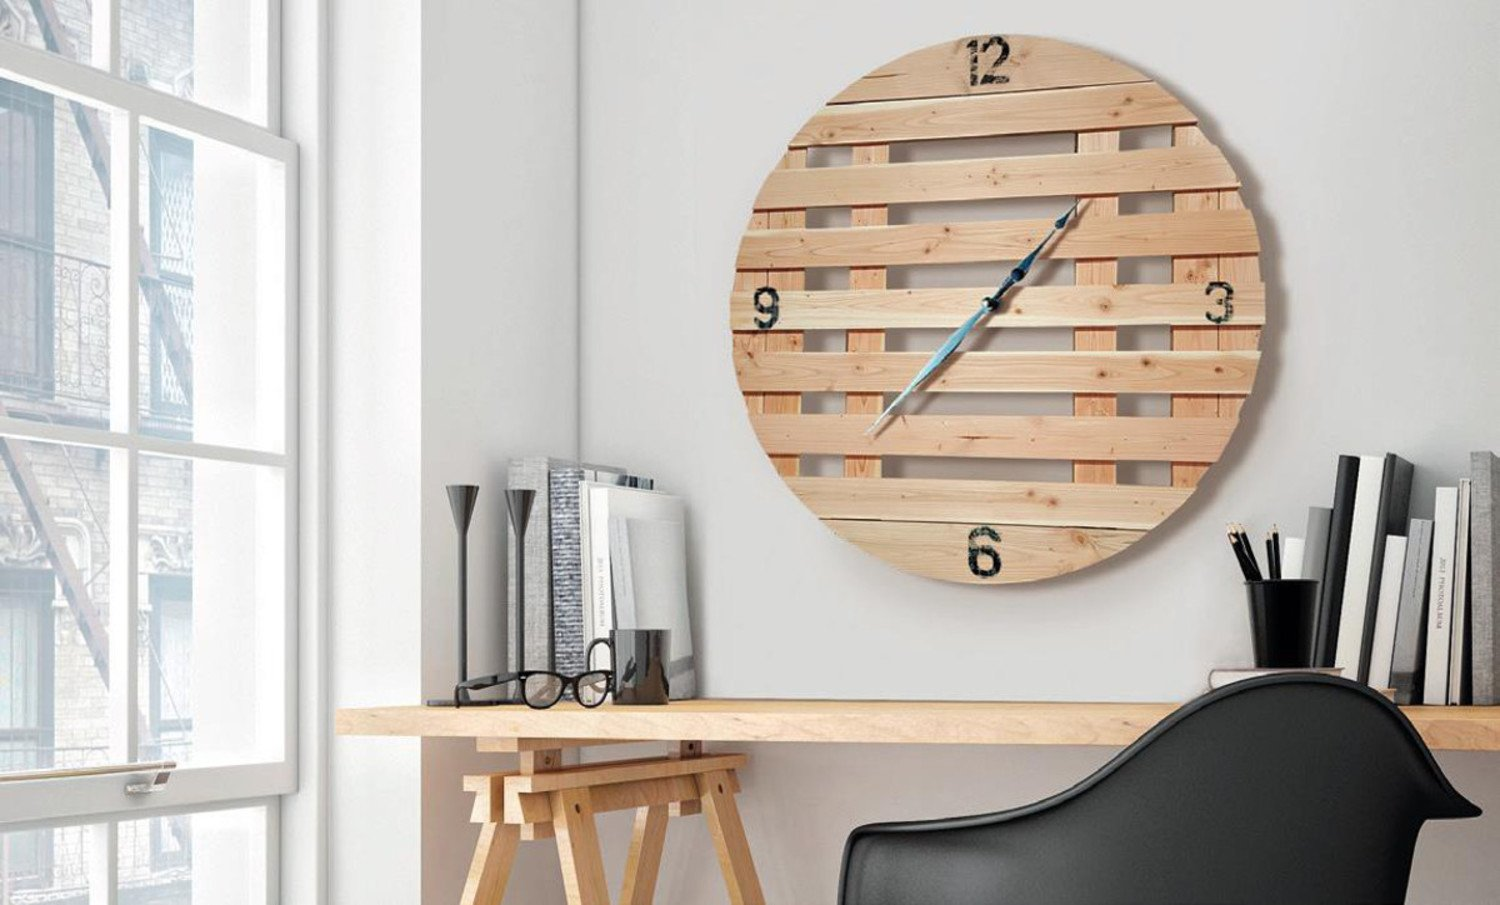 une palette d tourn e en horloge leroy merlin. Black Bedroom Furniture Sets. Home Design Ideas